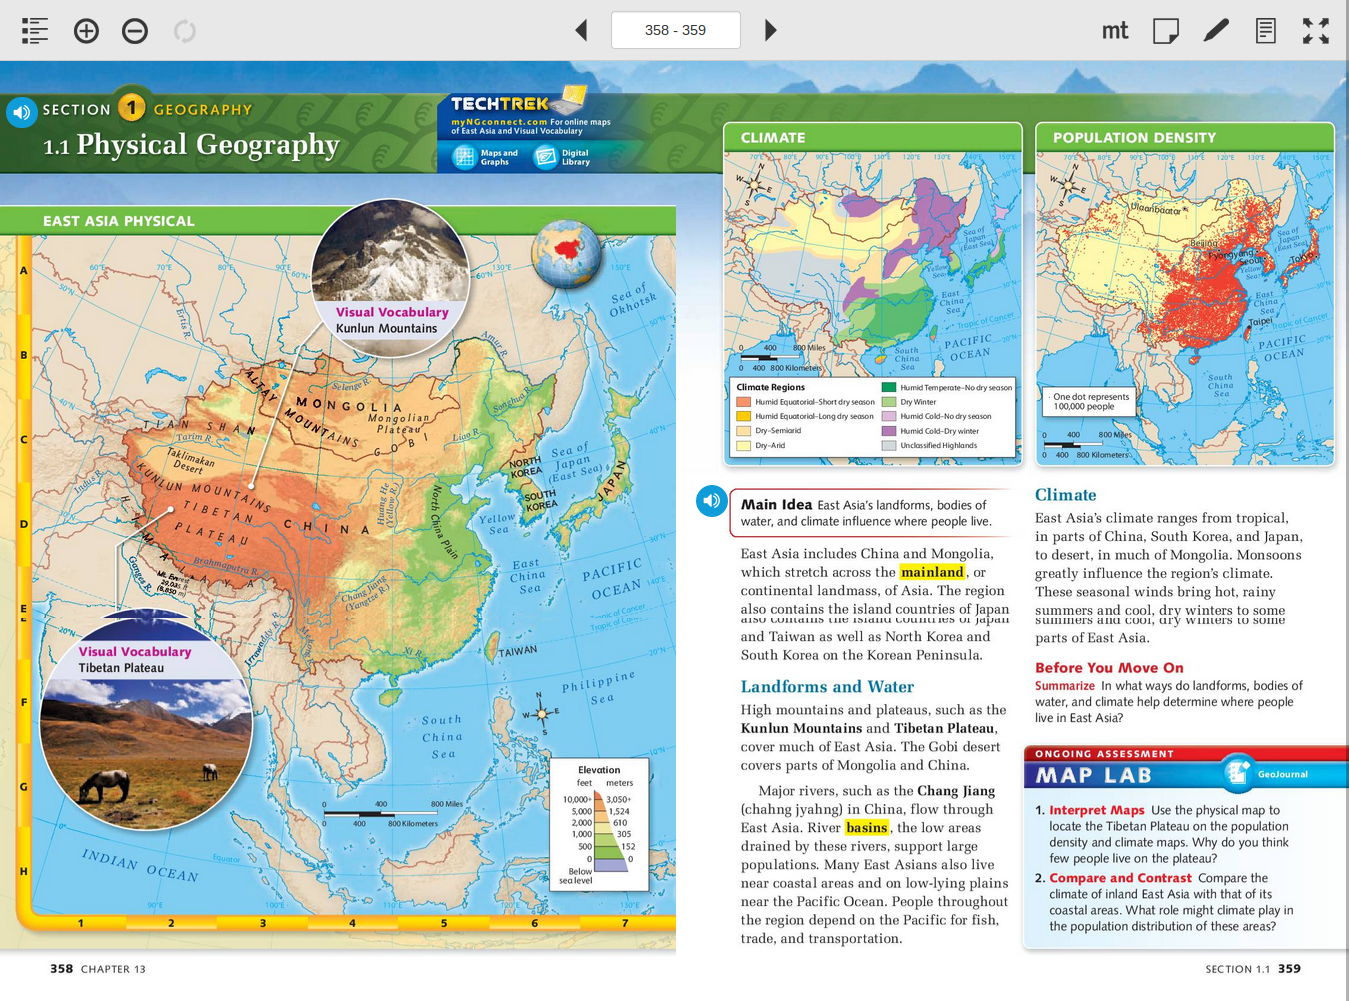 6th Grade Map Of Asia.Physical Geography Of East Asia 6th Grade Social Studies